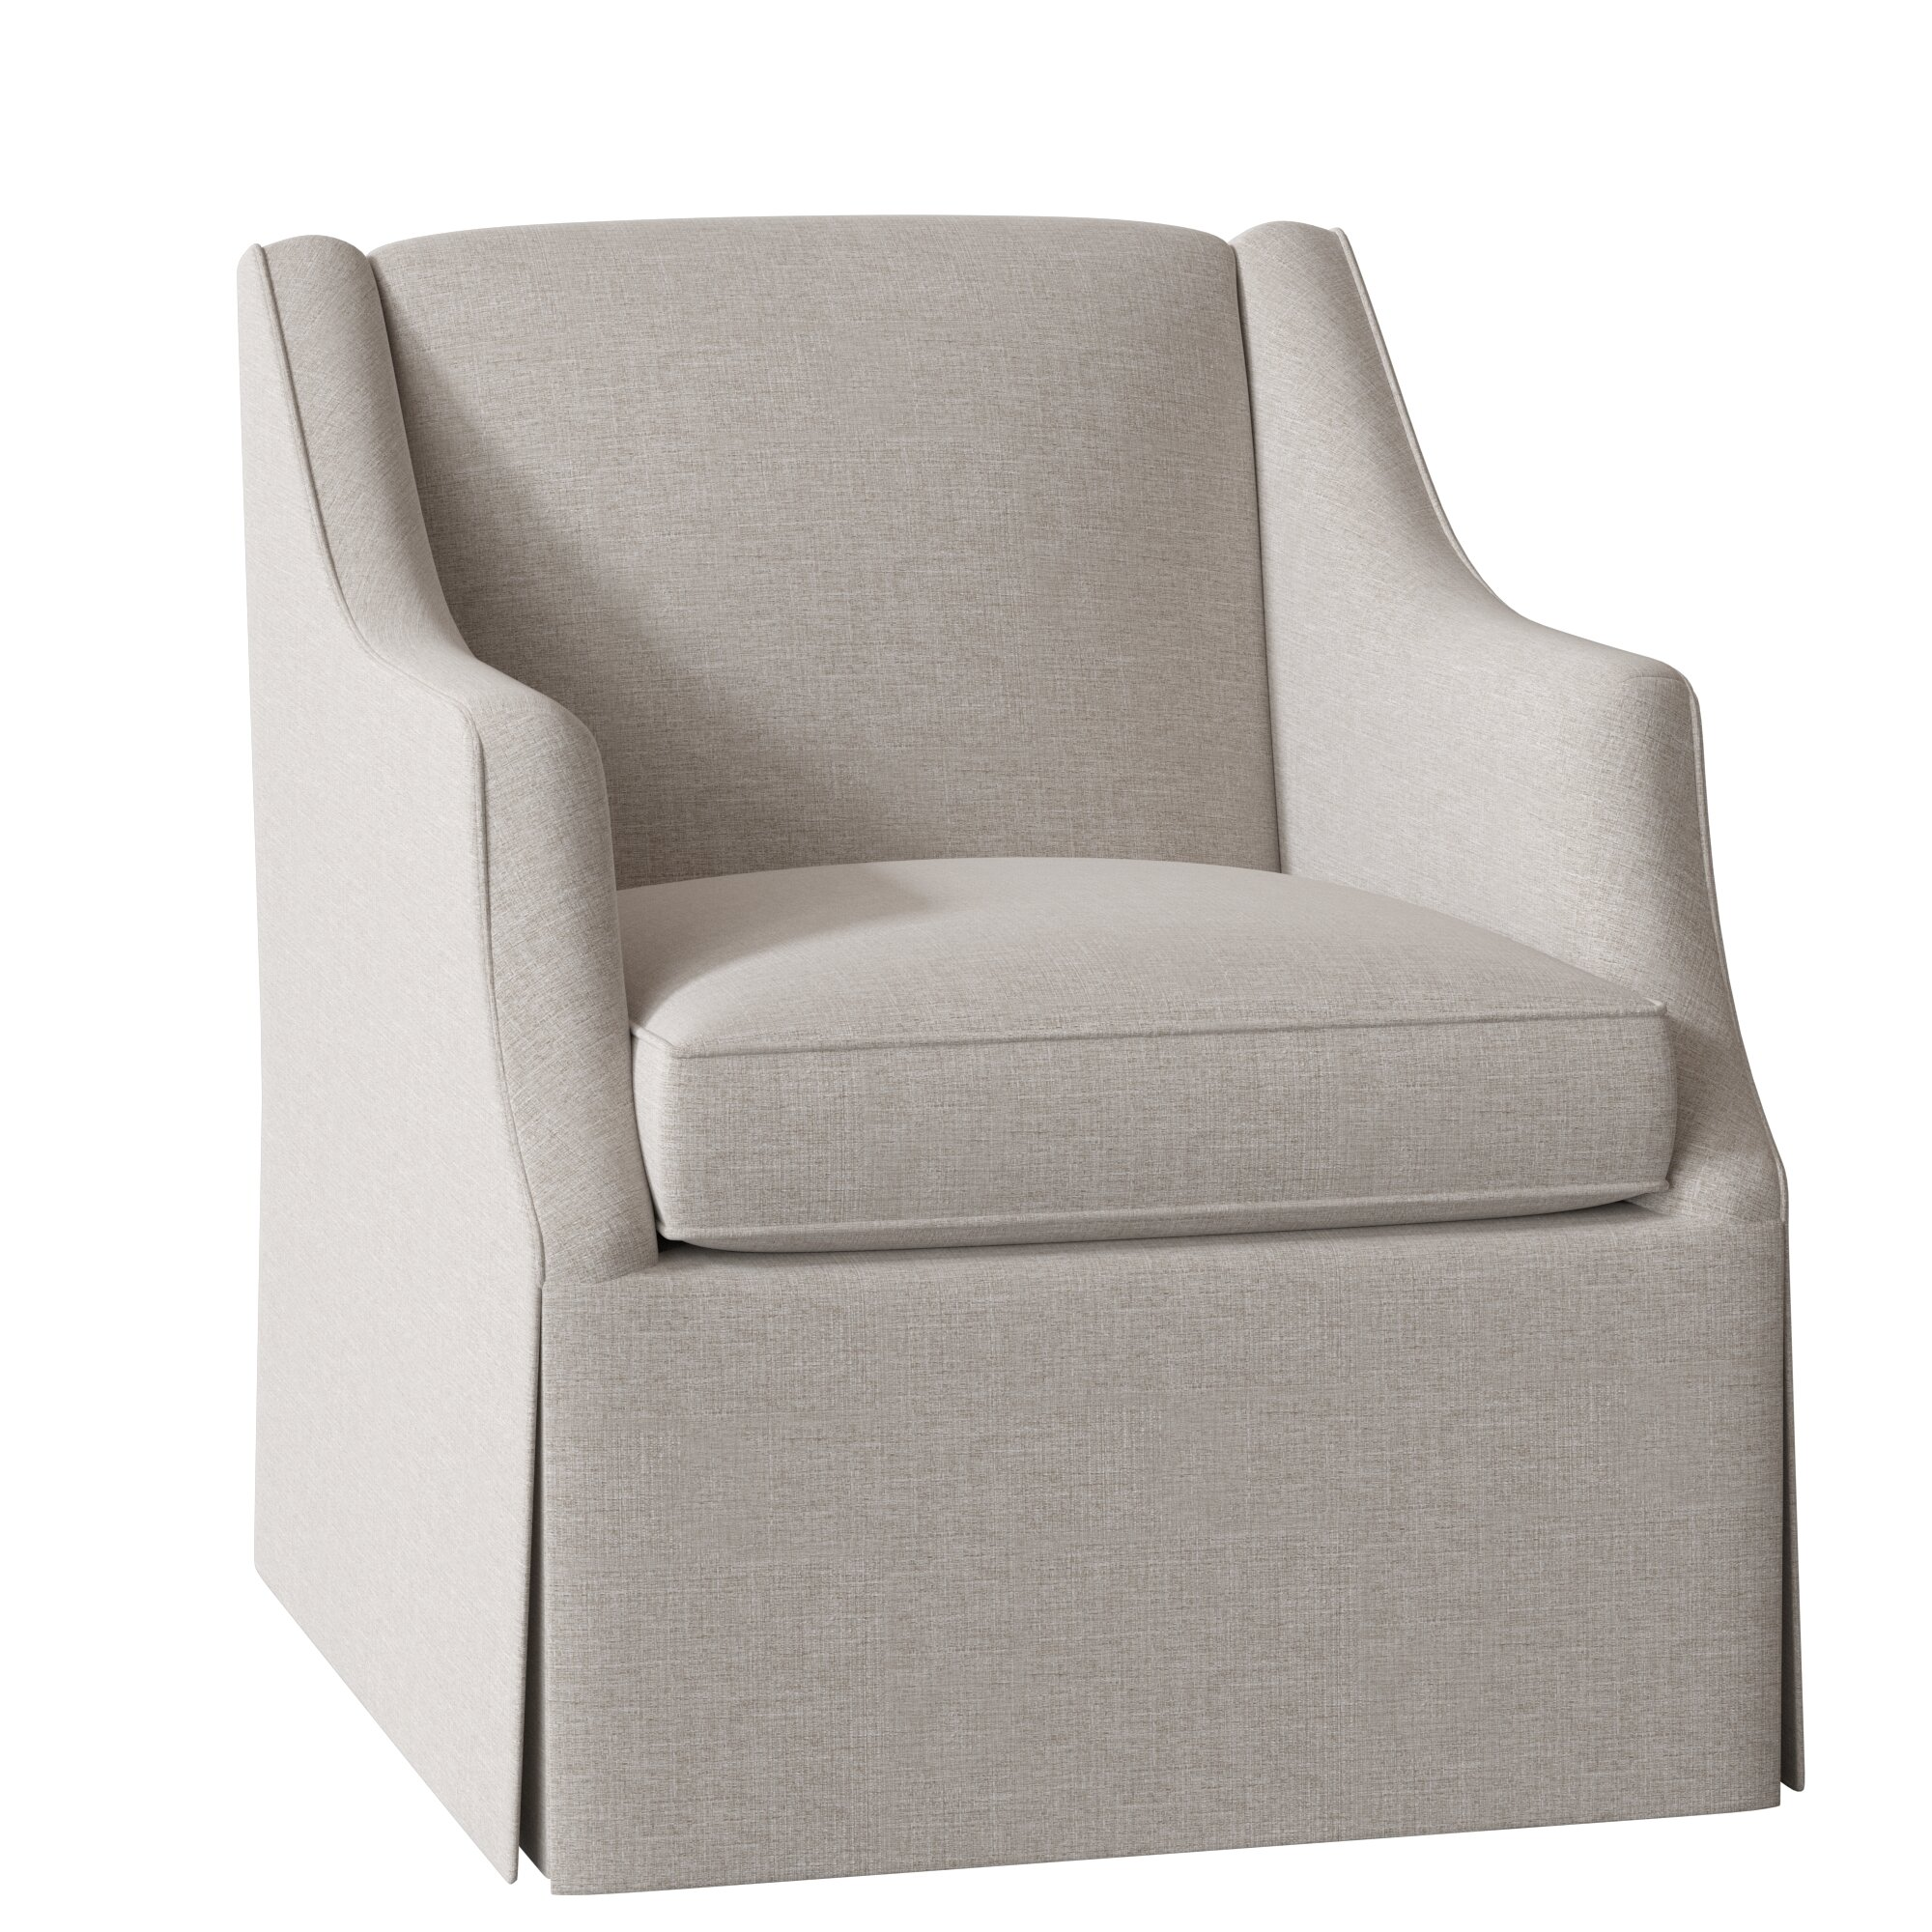 Fantastic Clayton Armchair Pdpeps Interior Chair Design Pdpepsorg